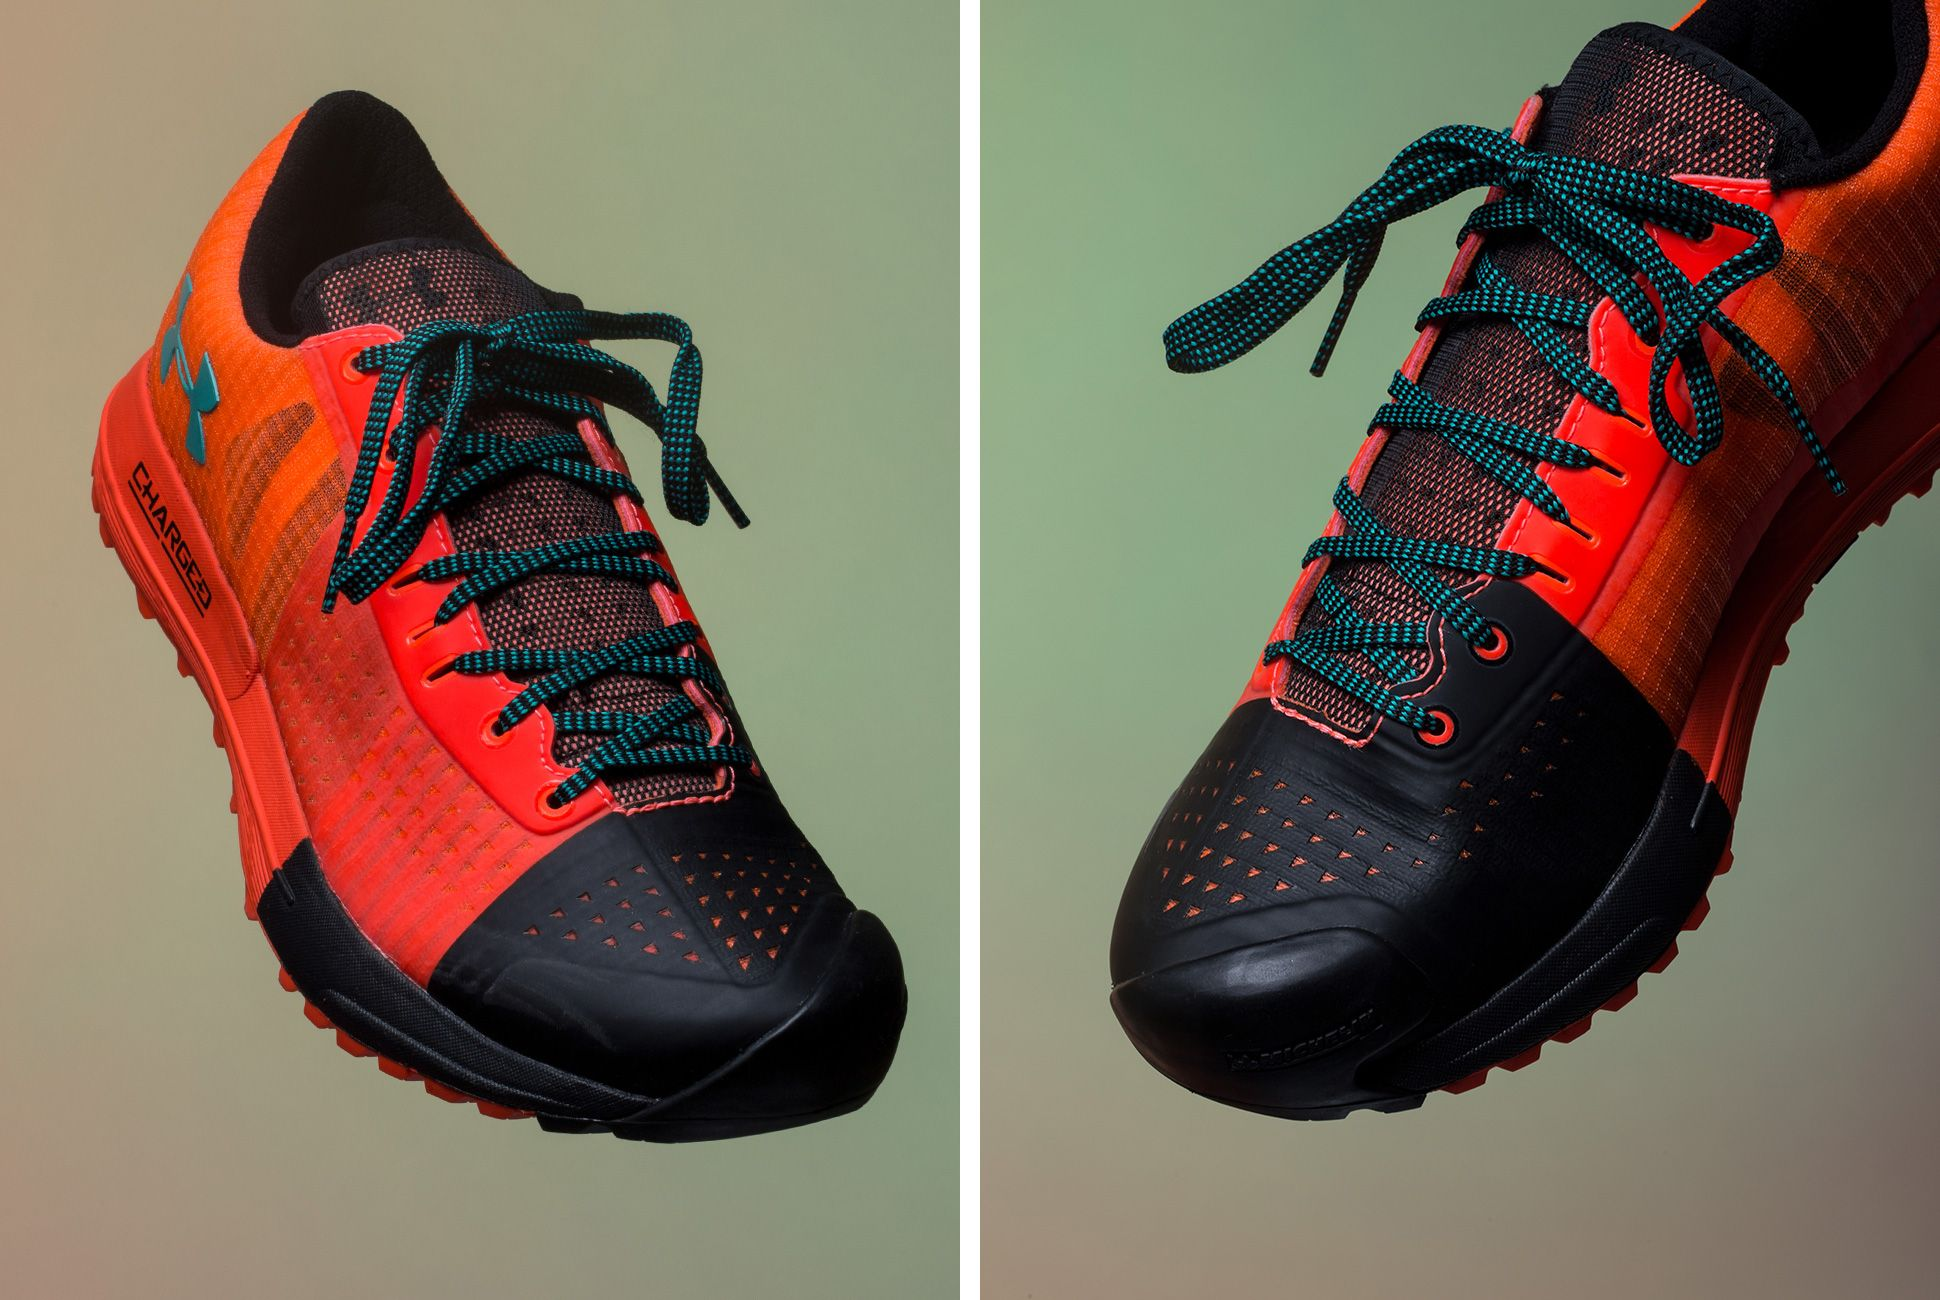 The 29 Best Running Shoes of 2017 - Gear Patrol